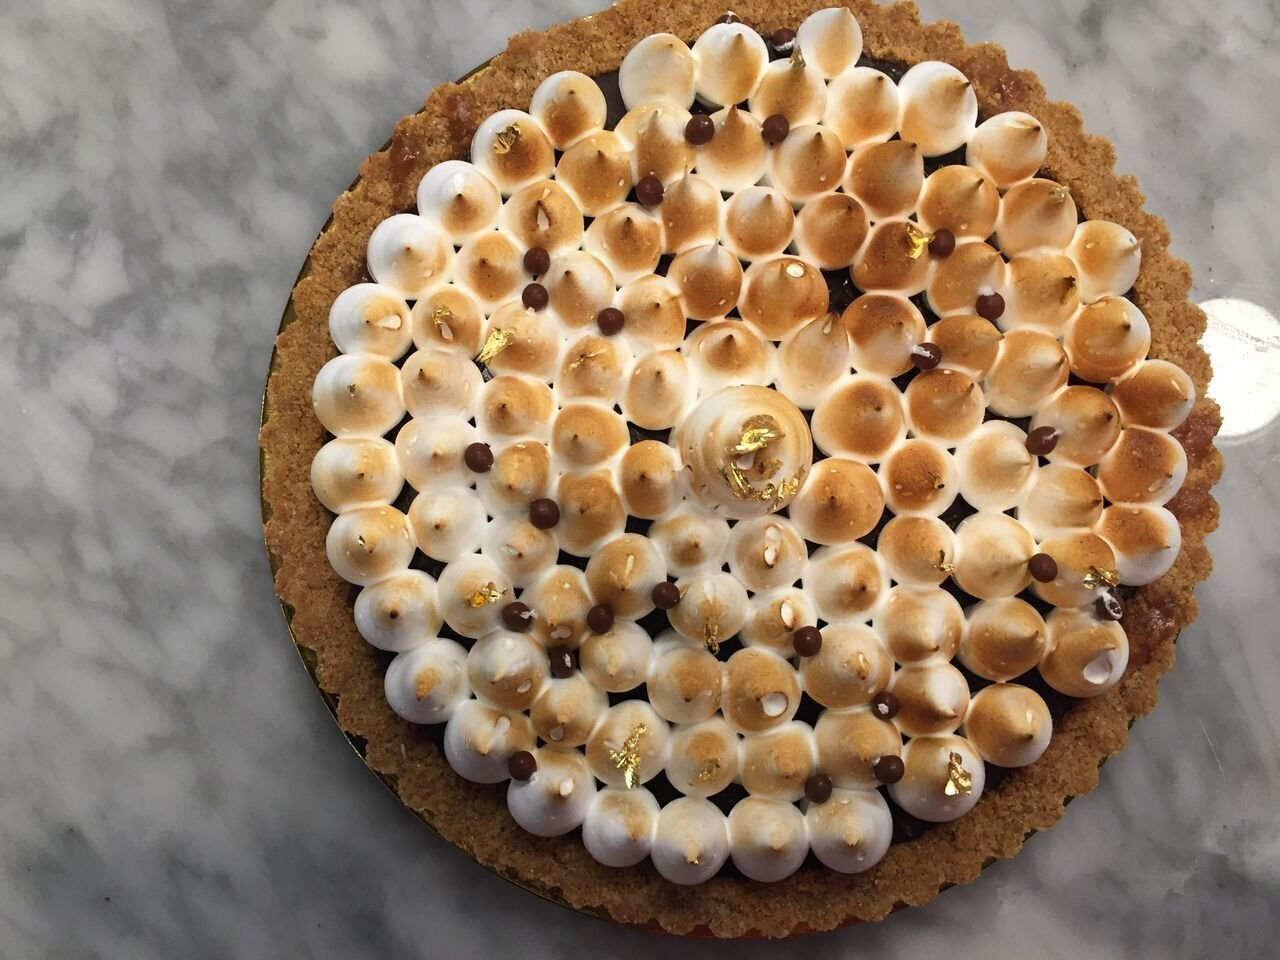 San Diego's top 25 s'mores treats